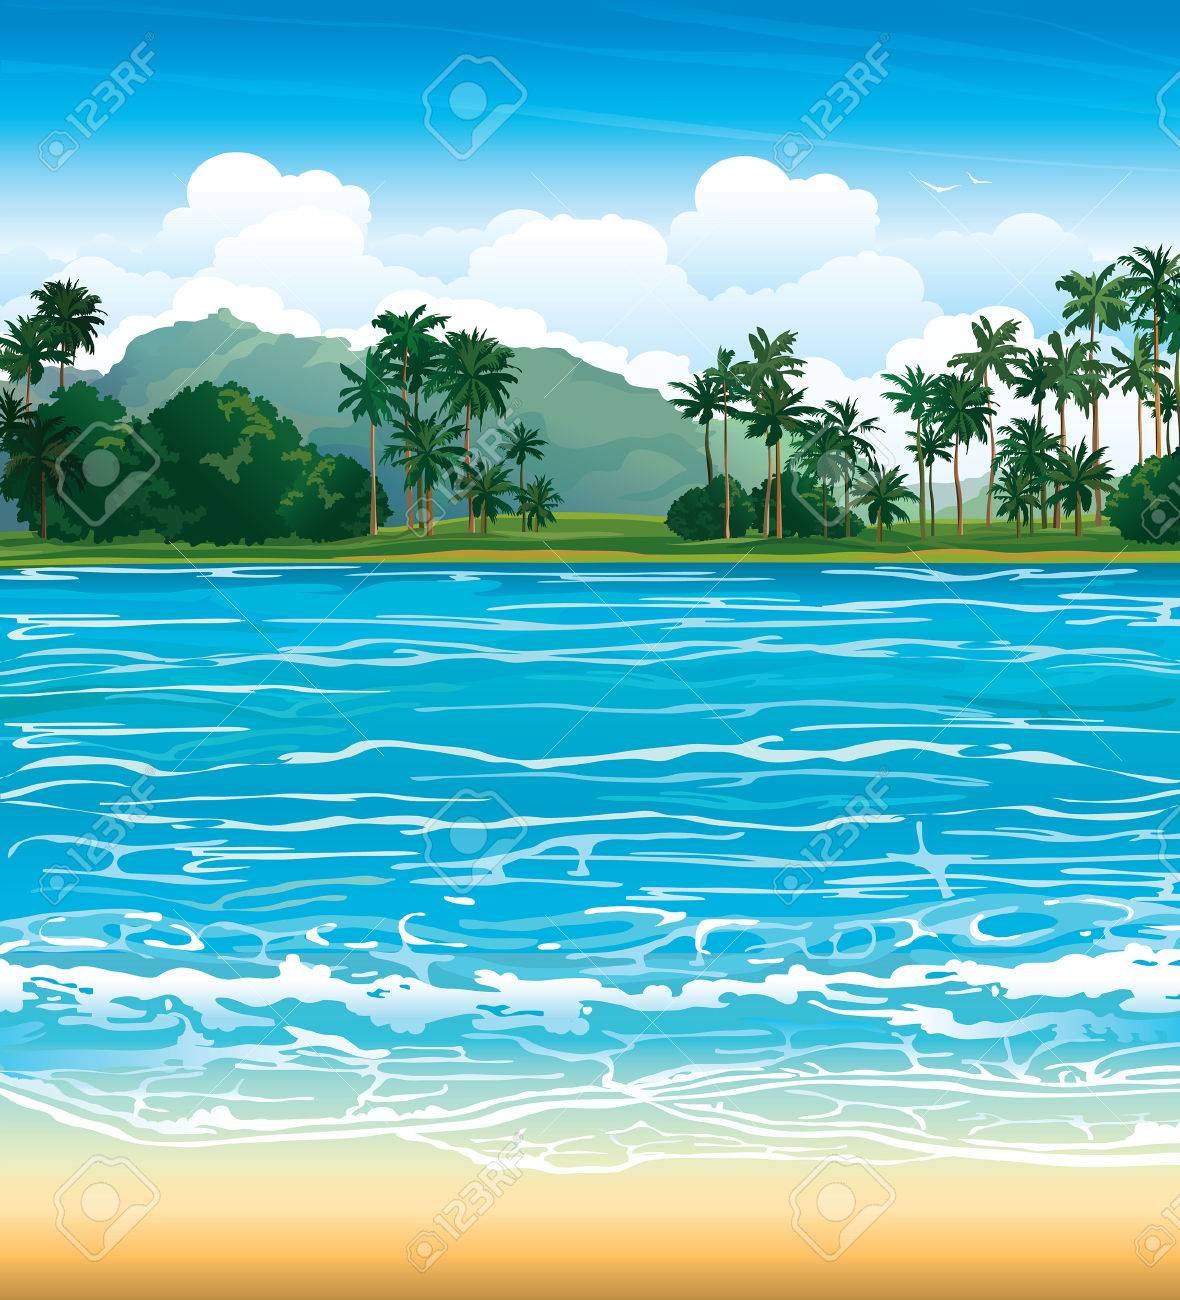 Tropical landscape with blue sea and palms. - 29816389